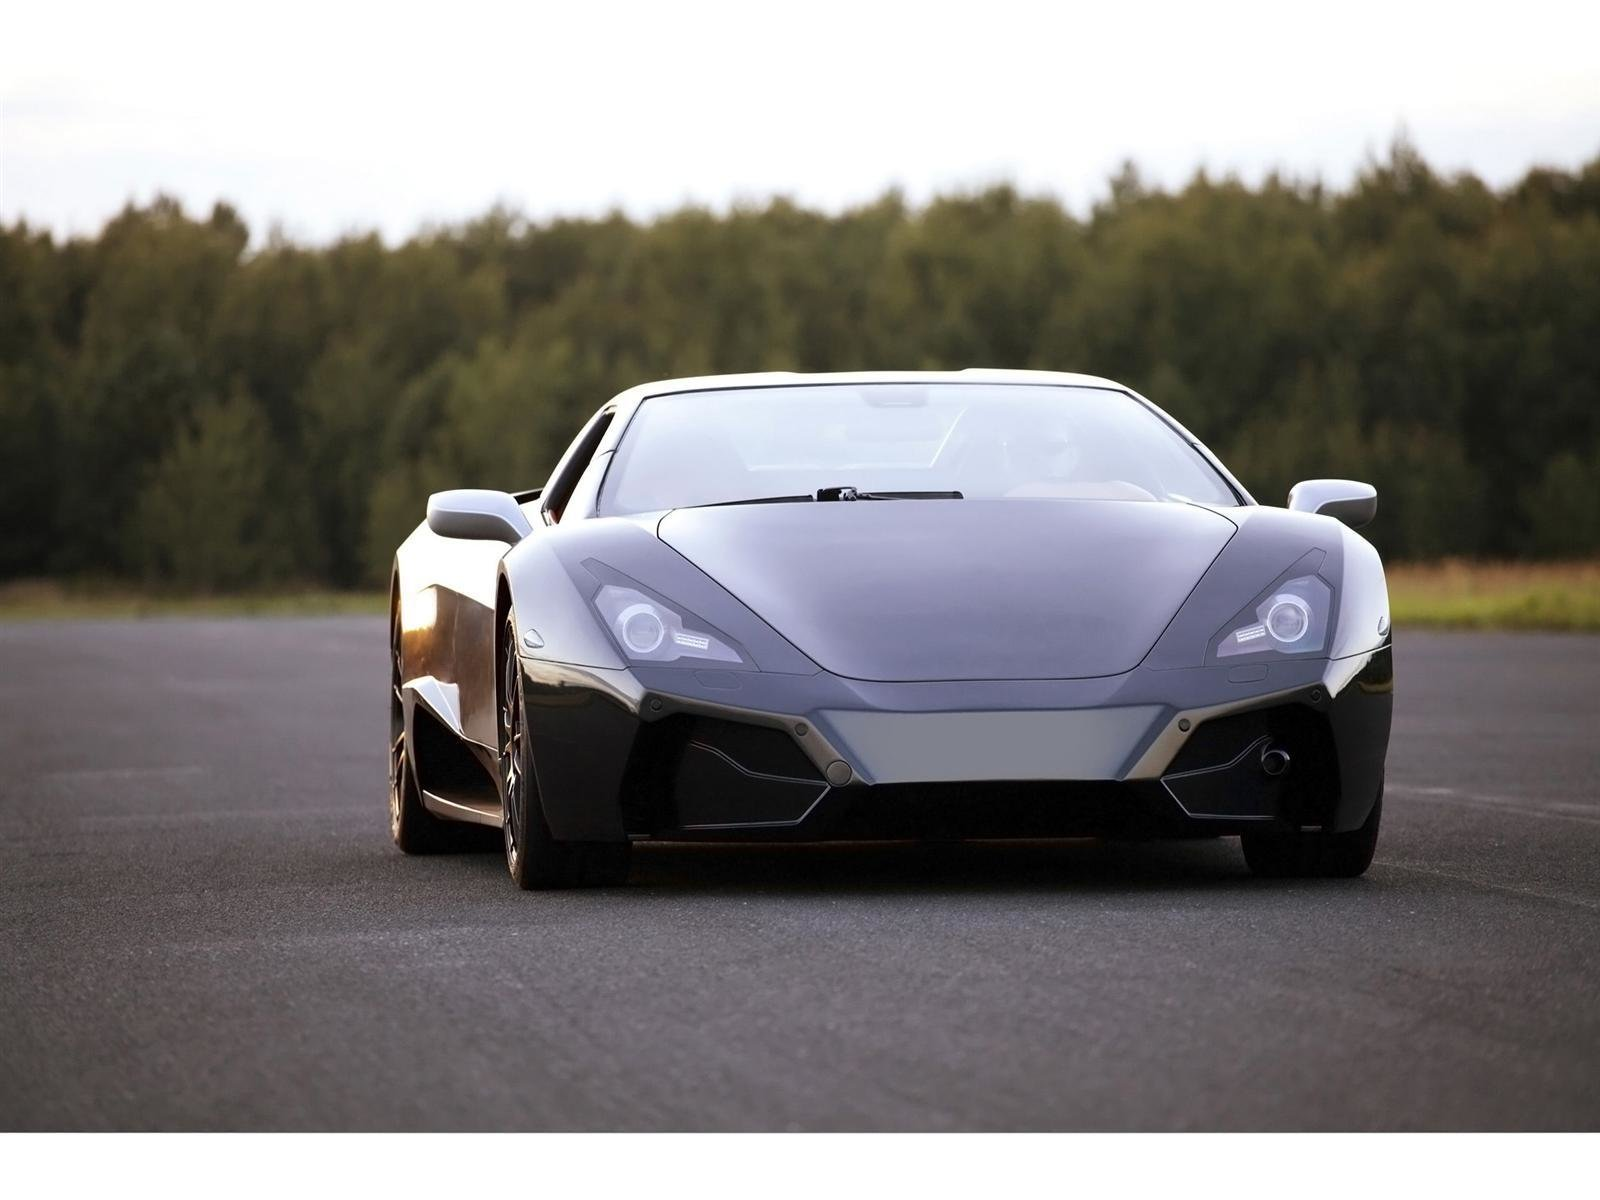 Latest 2012 Arrinera Supercar Image Free Download